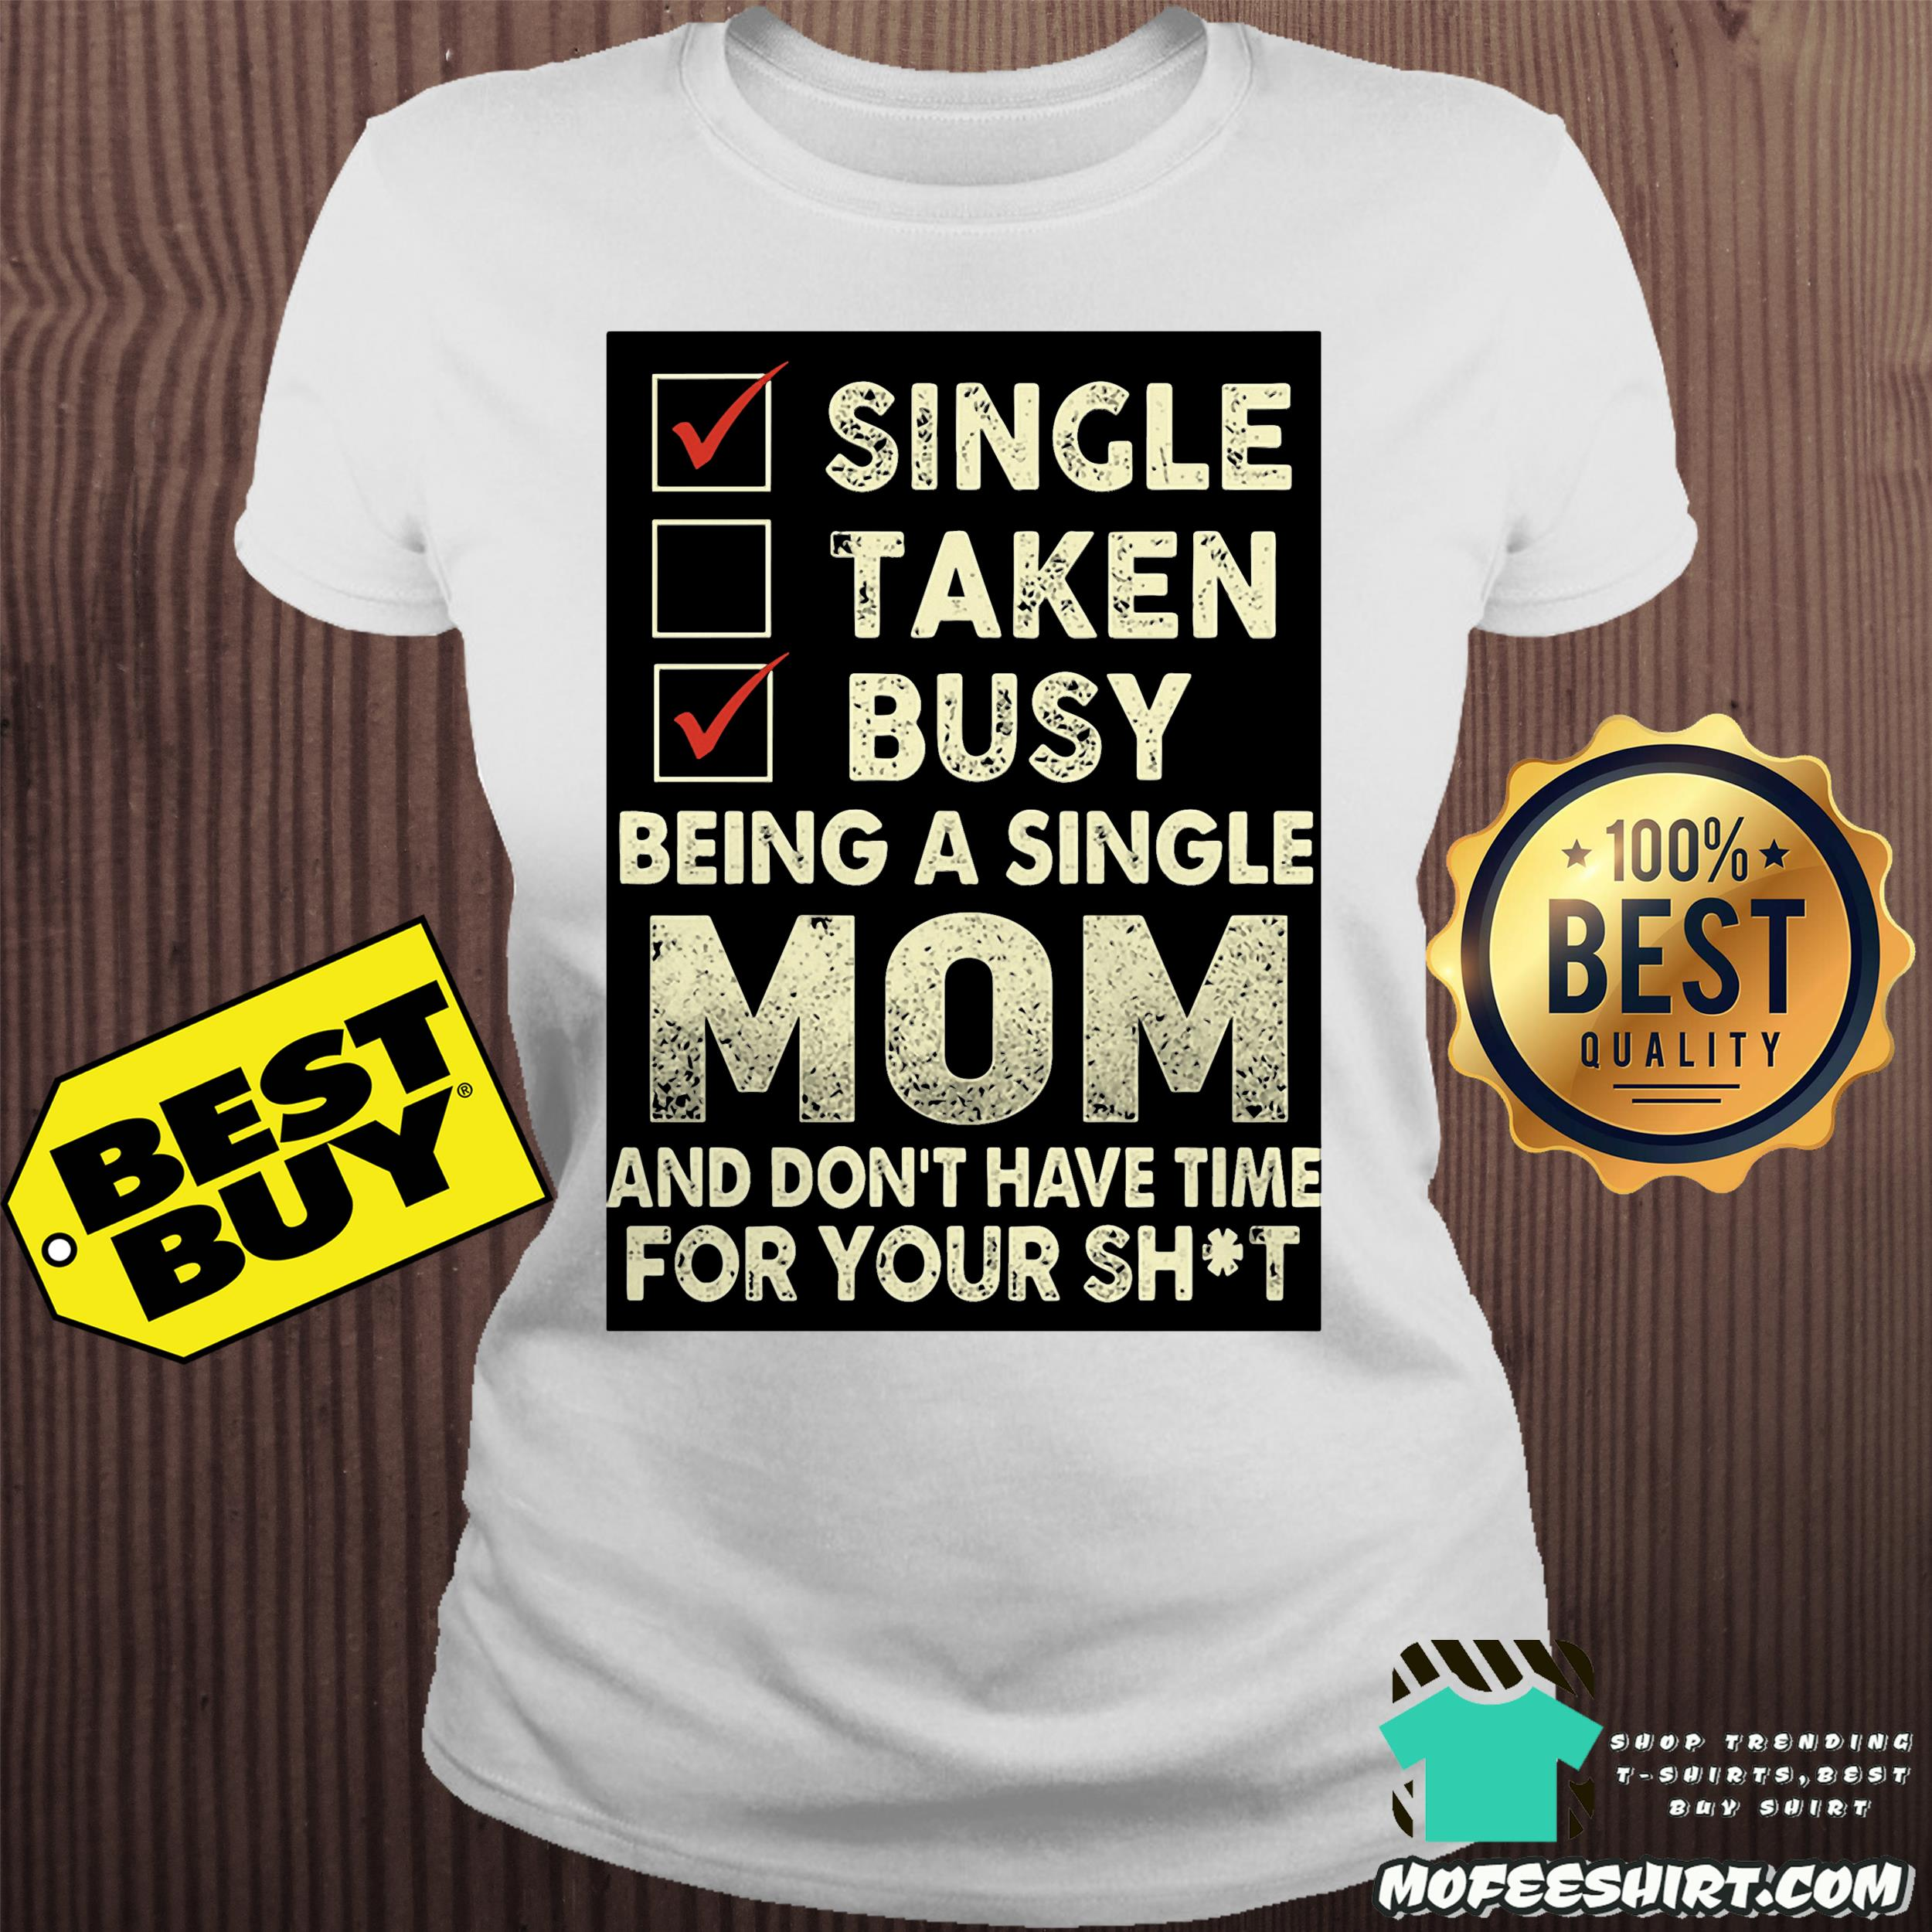 single taken busy being a single mom and dont have time for your shit ladies tee - Single taken busy being a single mom and don't have time for your shit shirt